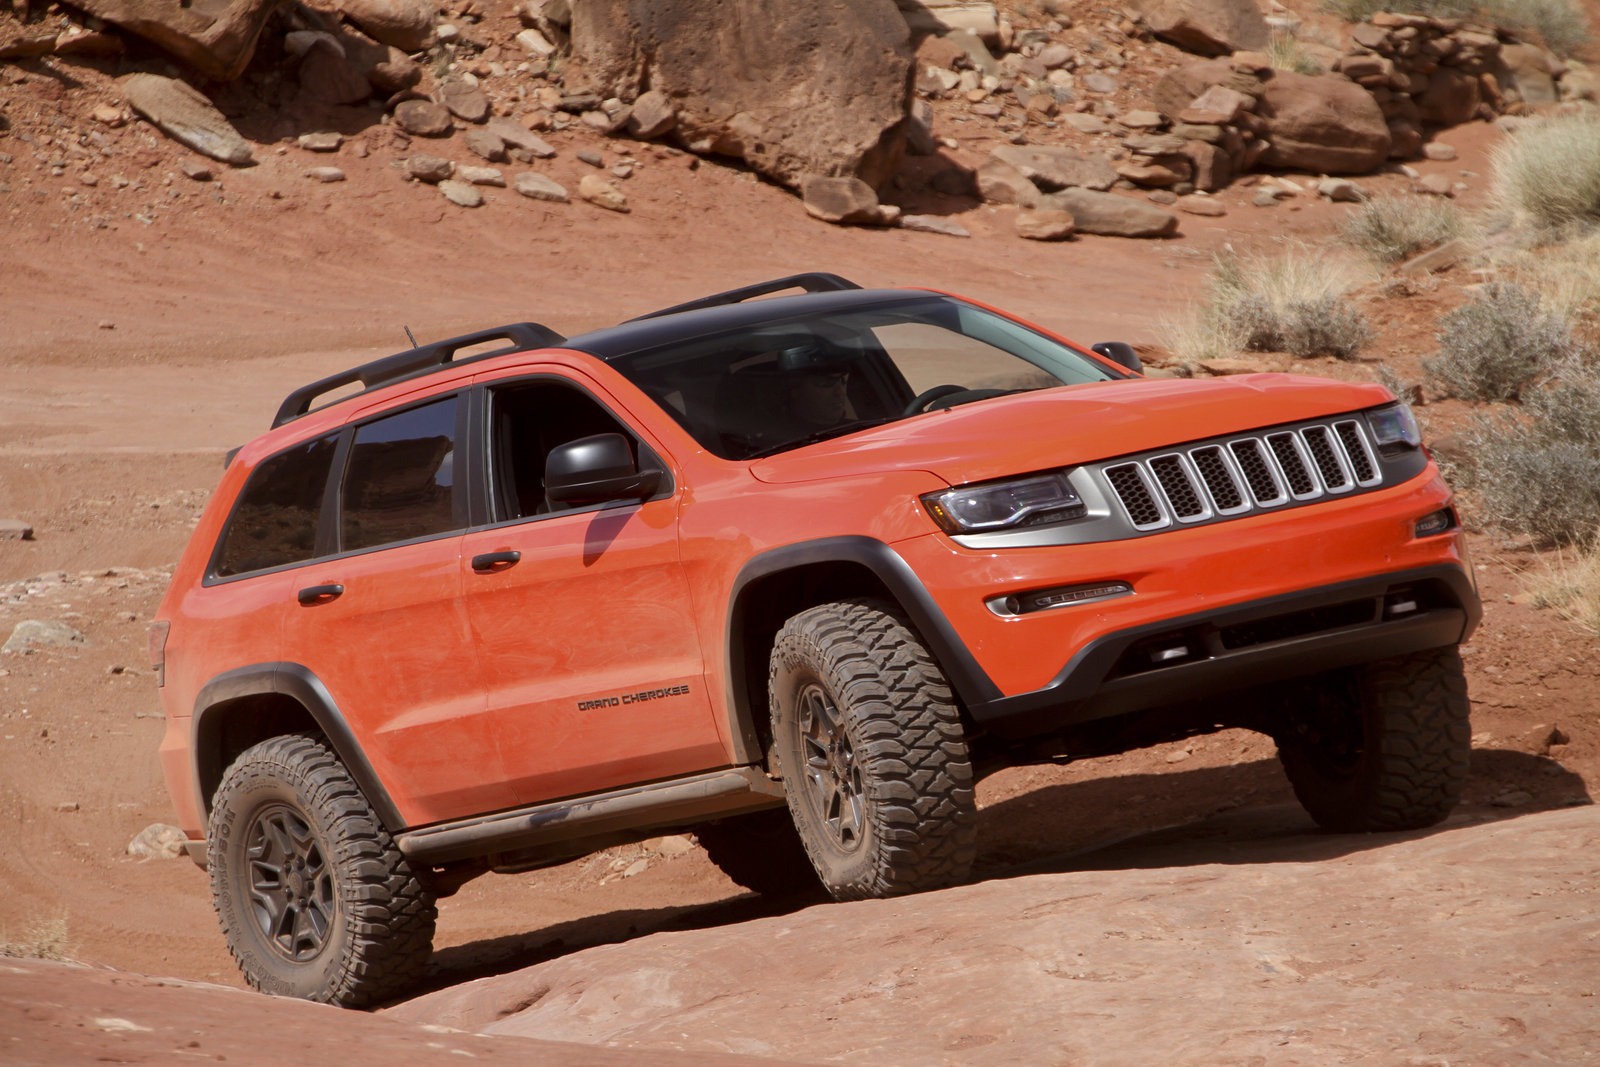 2013 jeep grand cherokee trailhawk ii concept picture 500604 car review top speed. Black Bedroom Furniture Sets. Home Design Ideas